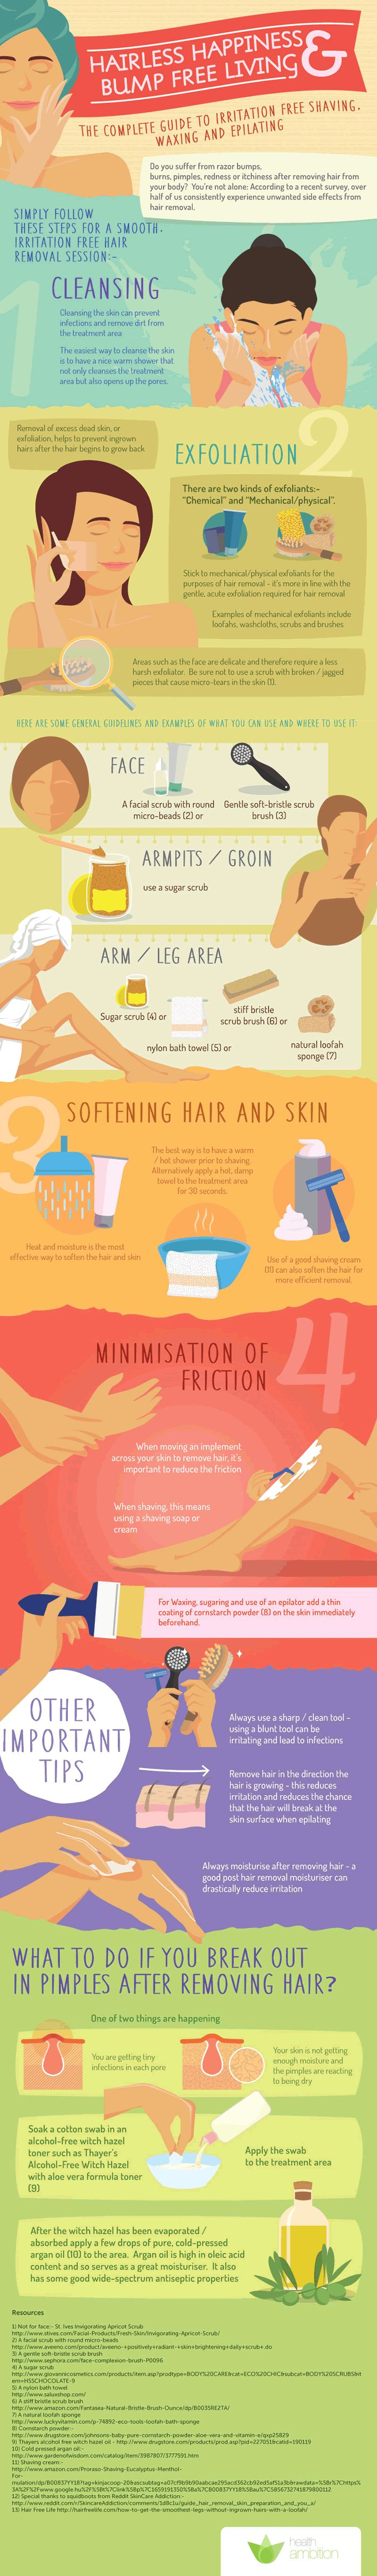 Women's guide to shaving: how to shave correctly